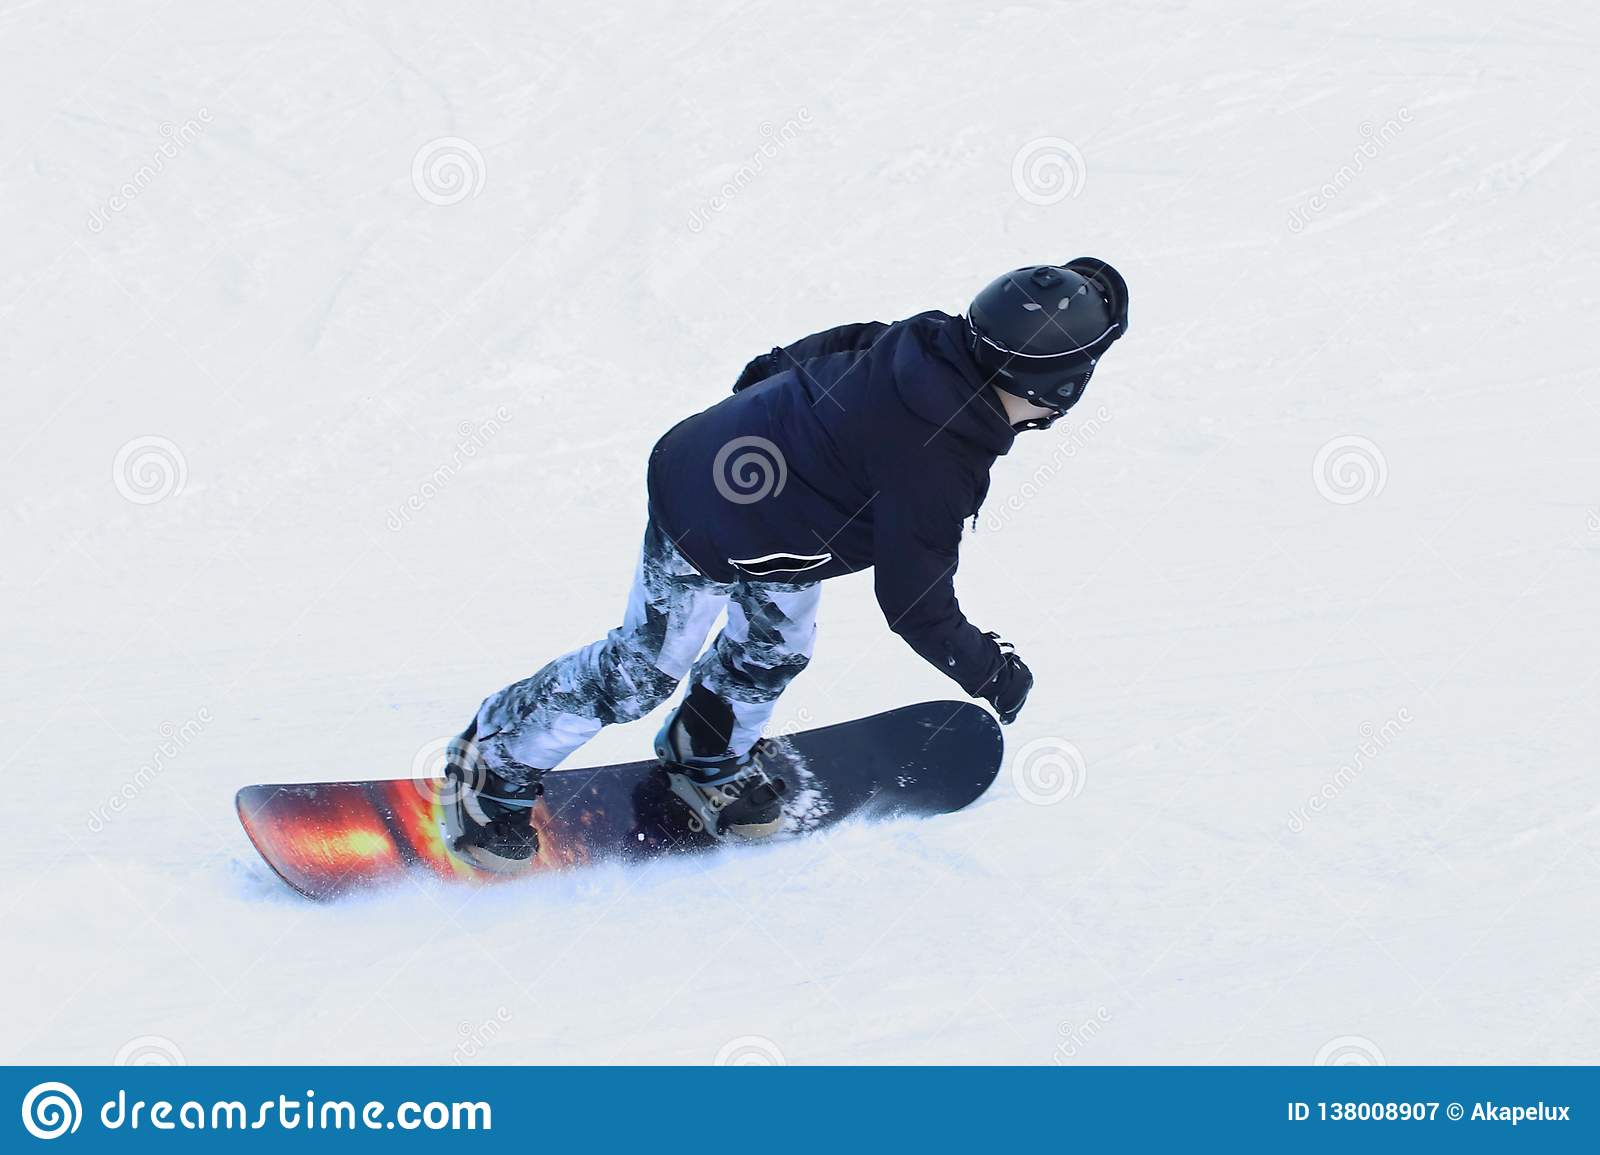 Snowboarder Riding On A Snowboard Down The Snow Covered